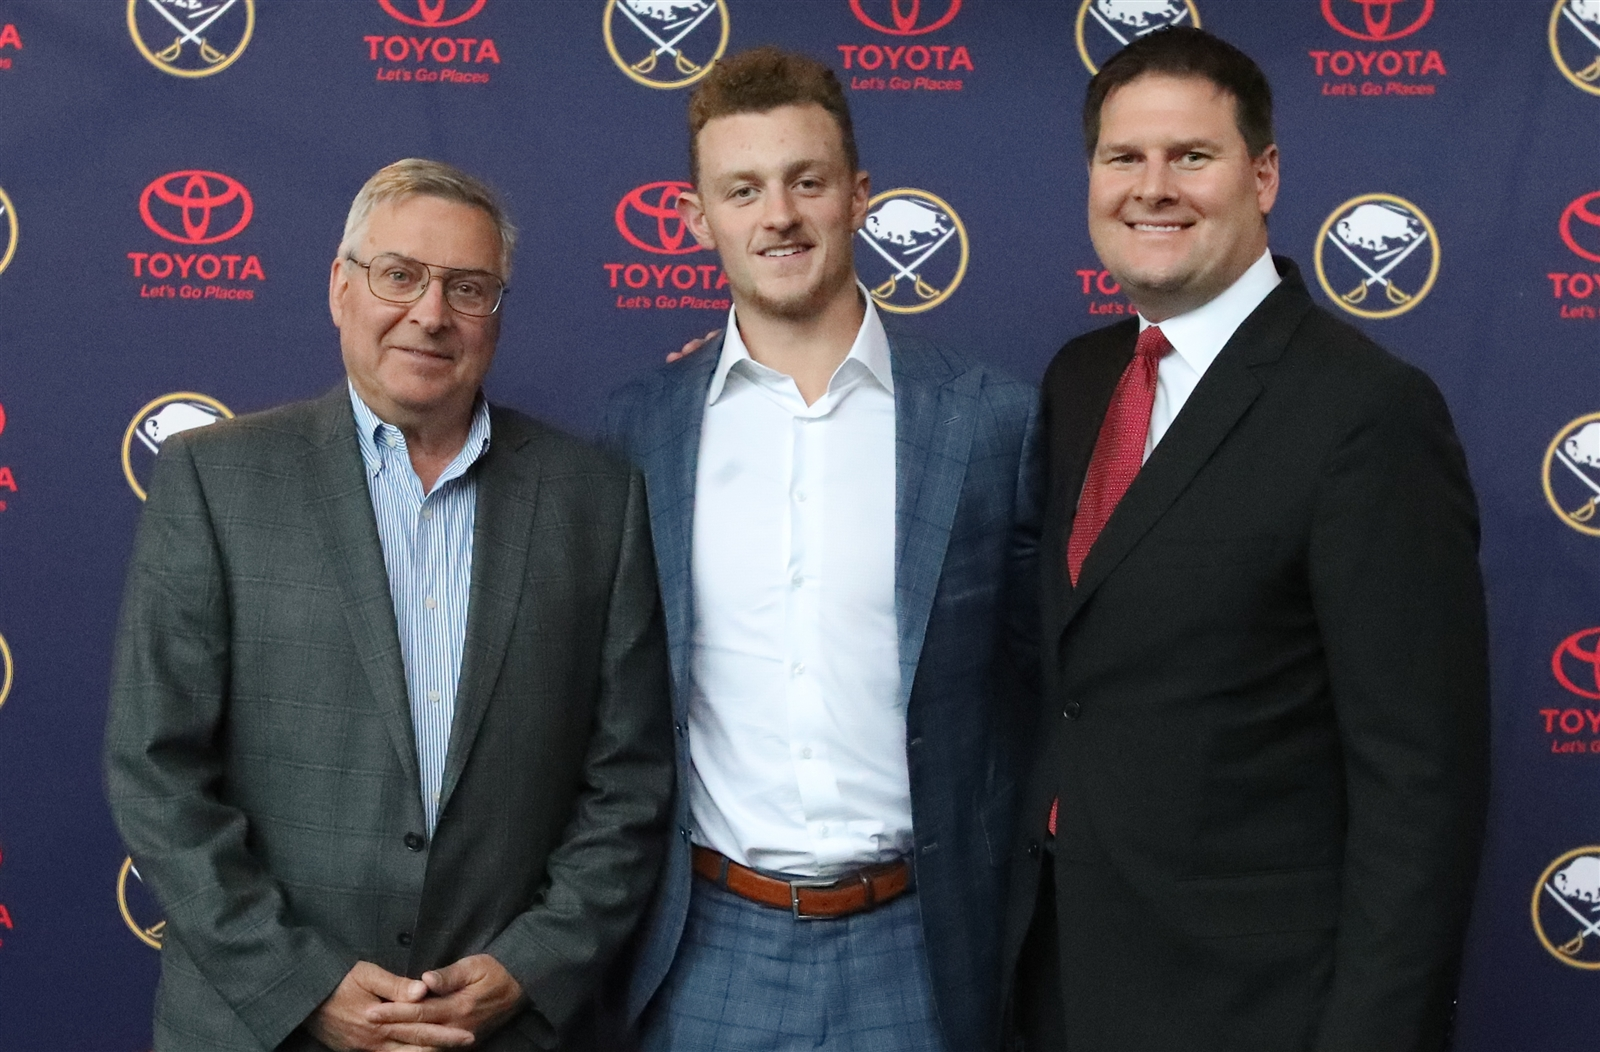 Oct. 4: Jack Eichel signs the biggest contract extension in franchise history, an eight-year, $80 million deal that keeps him in Buffalo through the 2025-26 season.